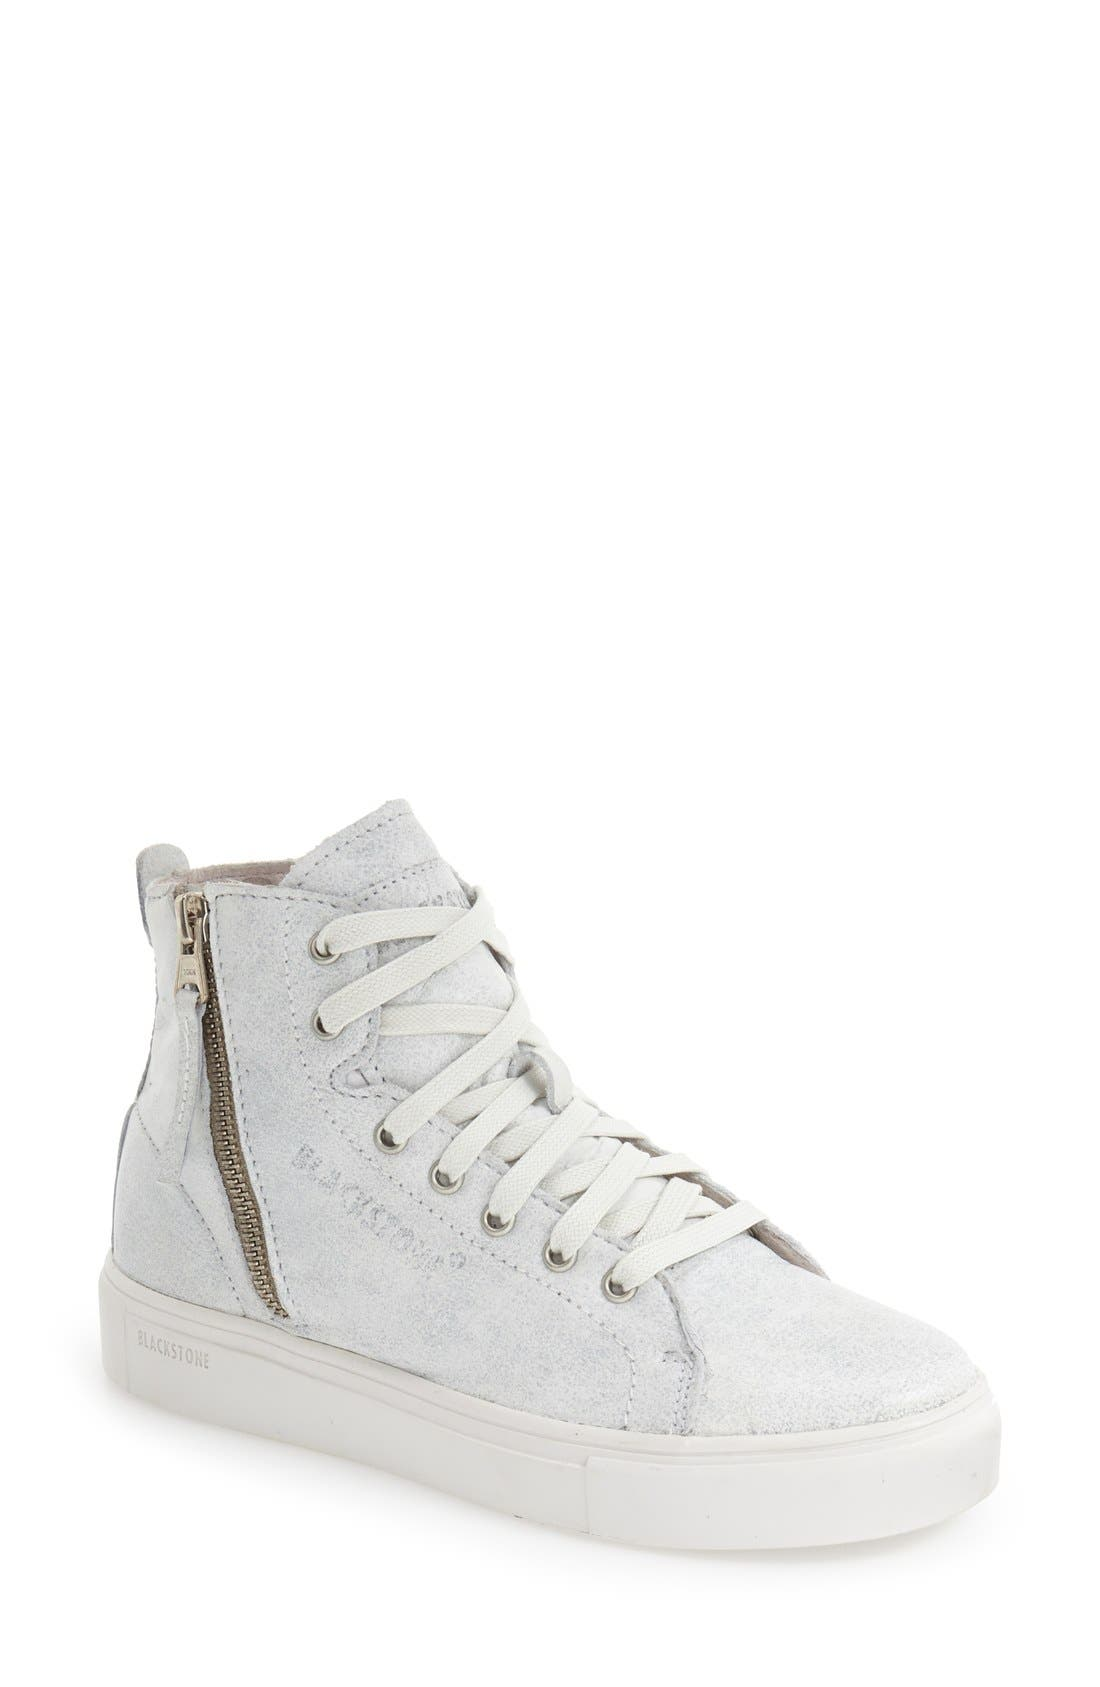 'LL65' High Top Sneaker,                             Main thumbnail 1, color,                             100